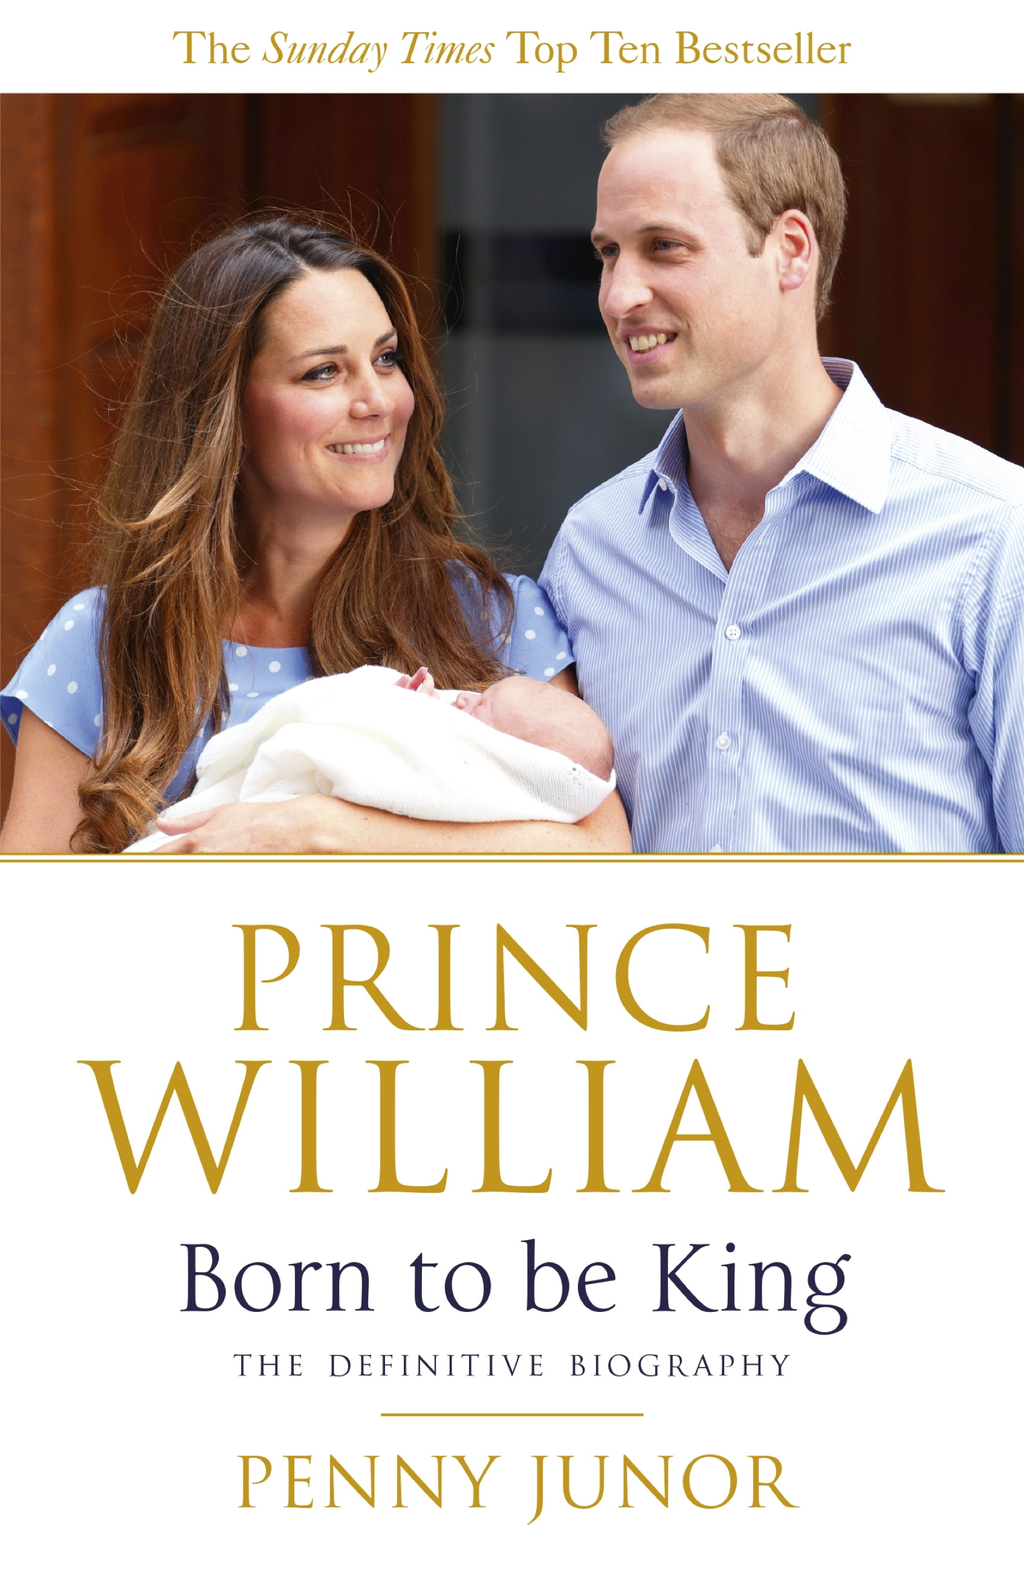 Prince William: Born to be King